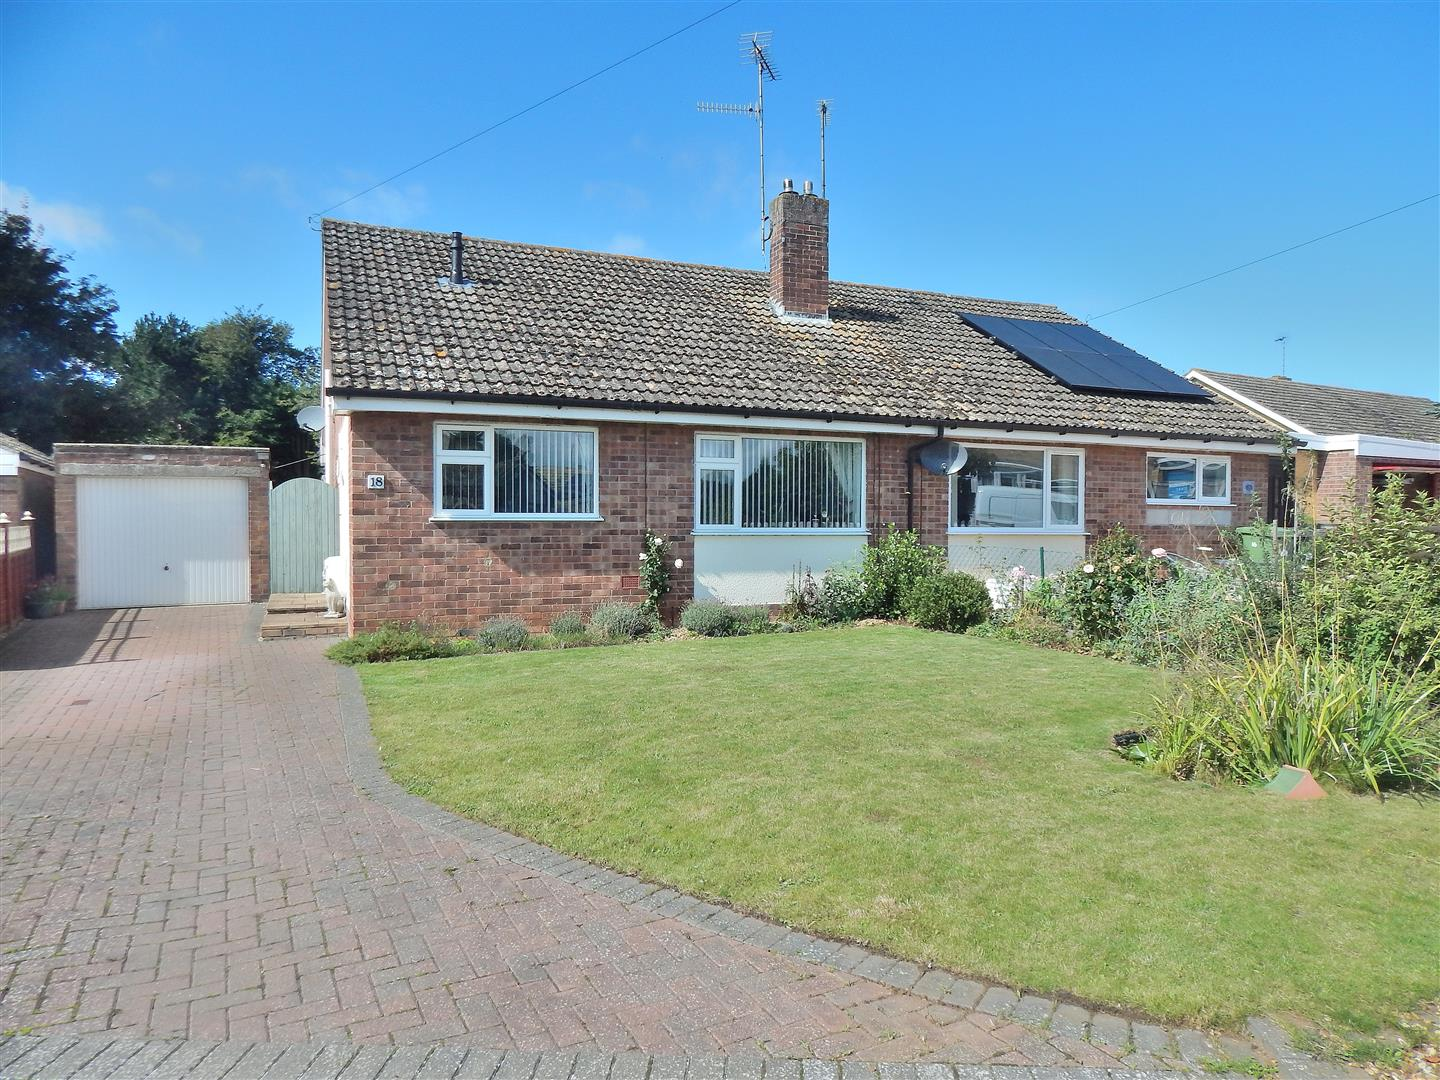 2 bed semi-detached bungalow for sale in King's Lynn, PE31 6JL, PE31